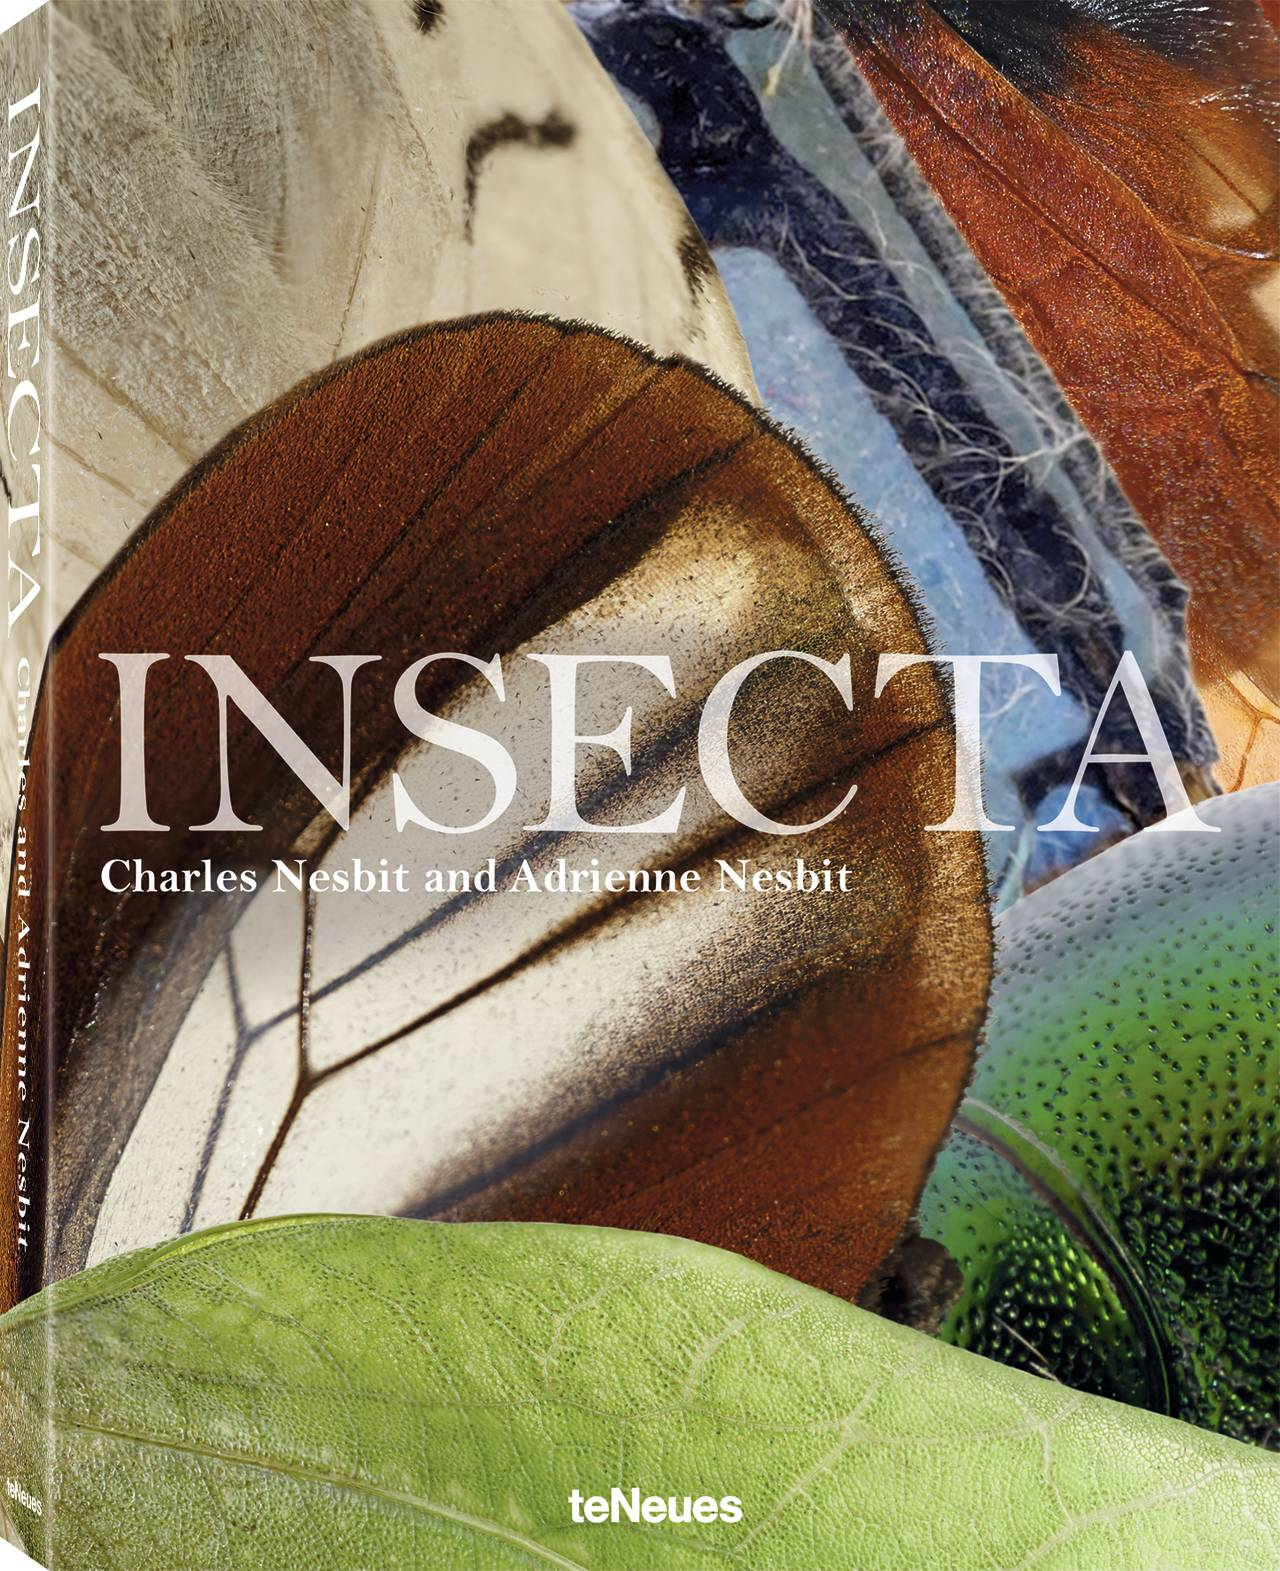 © INSECTA by Charles Nesbit and Adrienne Kaufman Nesbit, published by teNeues, www.teneues.com, Photo © 2017 Charles Nesbit and Adrienne Kaufman Nesbit. All rights reserved.